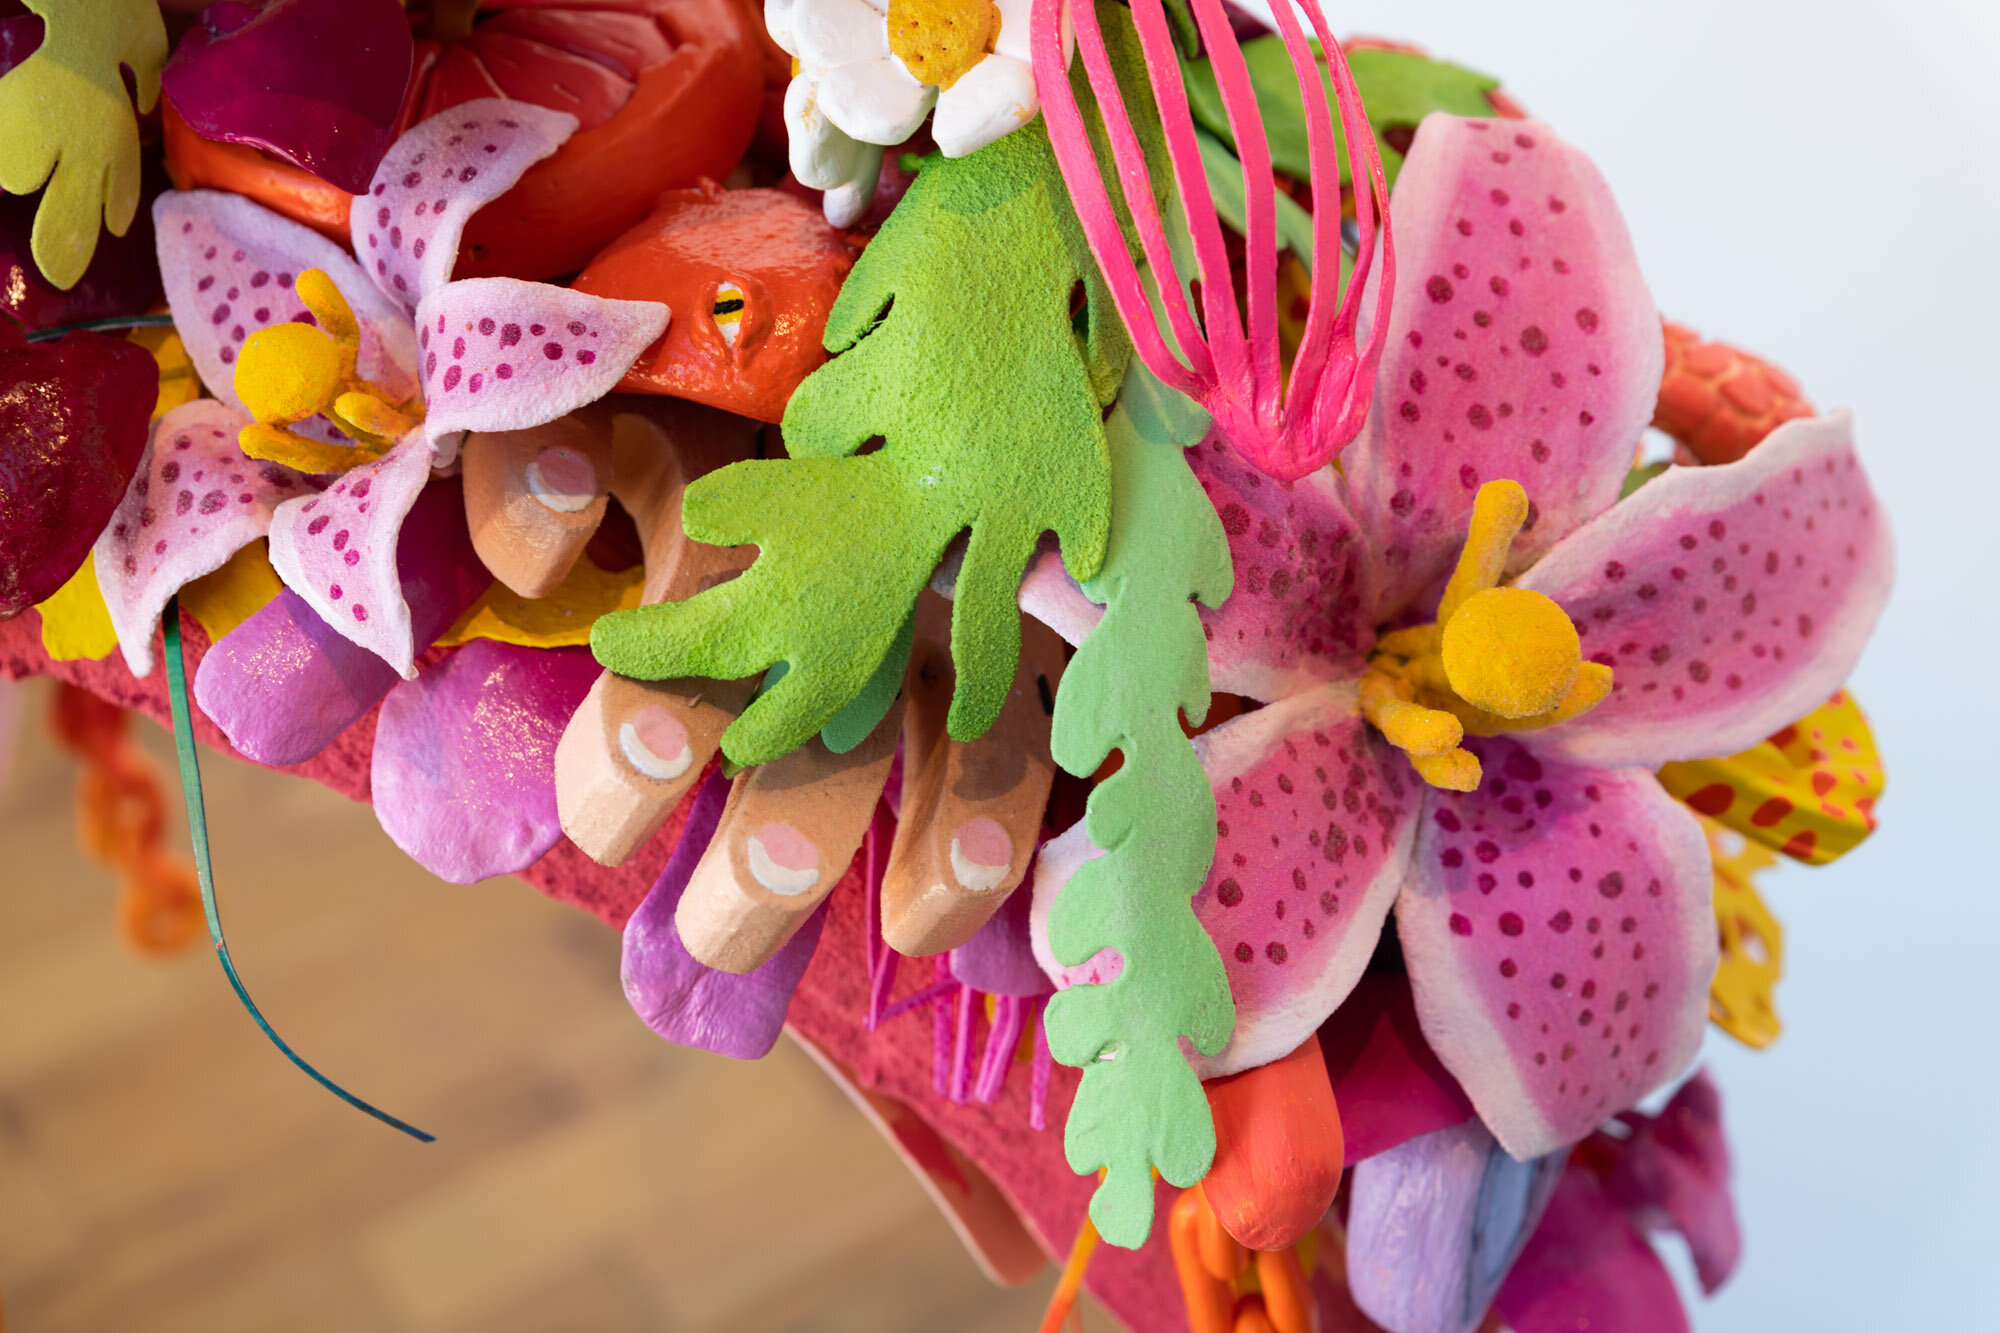 Cartoonish and vibrant layers of flowers, seaweed, fingers, and figures make up this closeup arched arm of a statue.